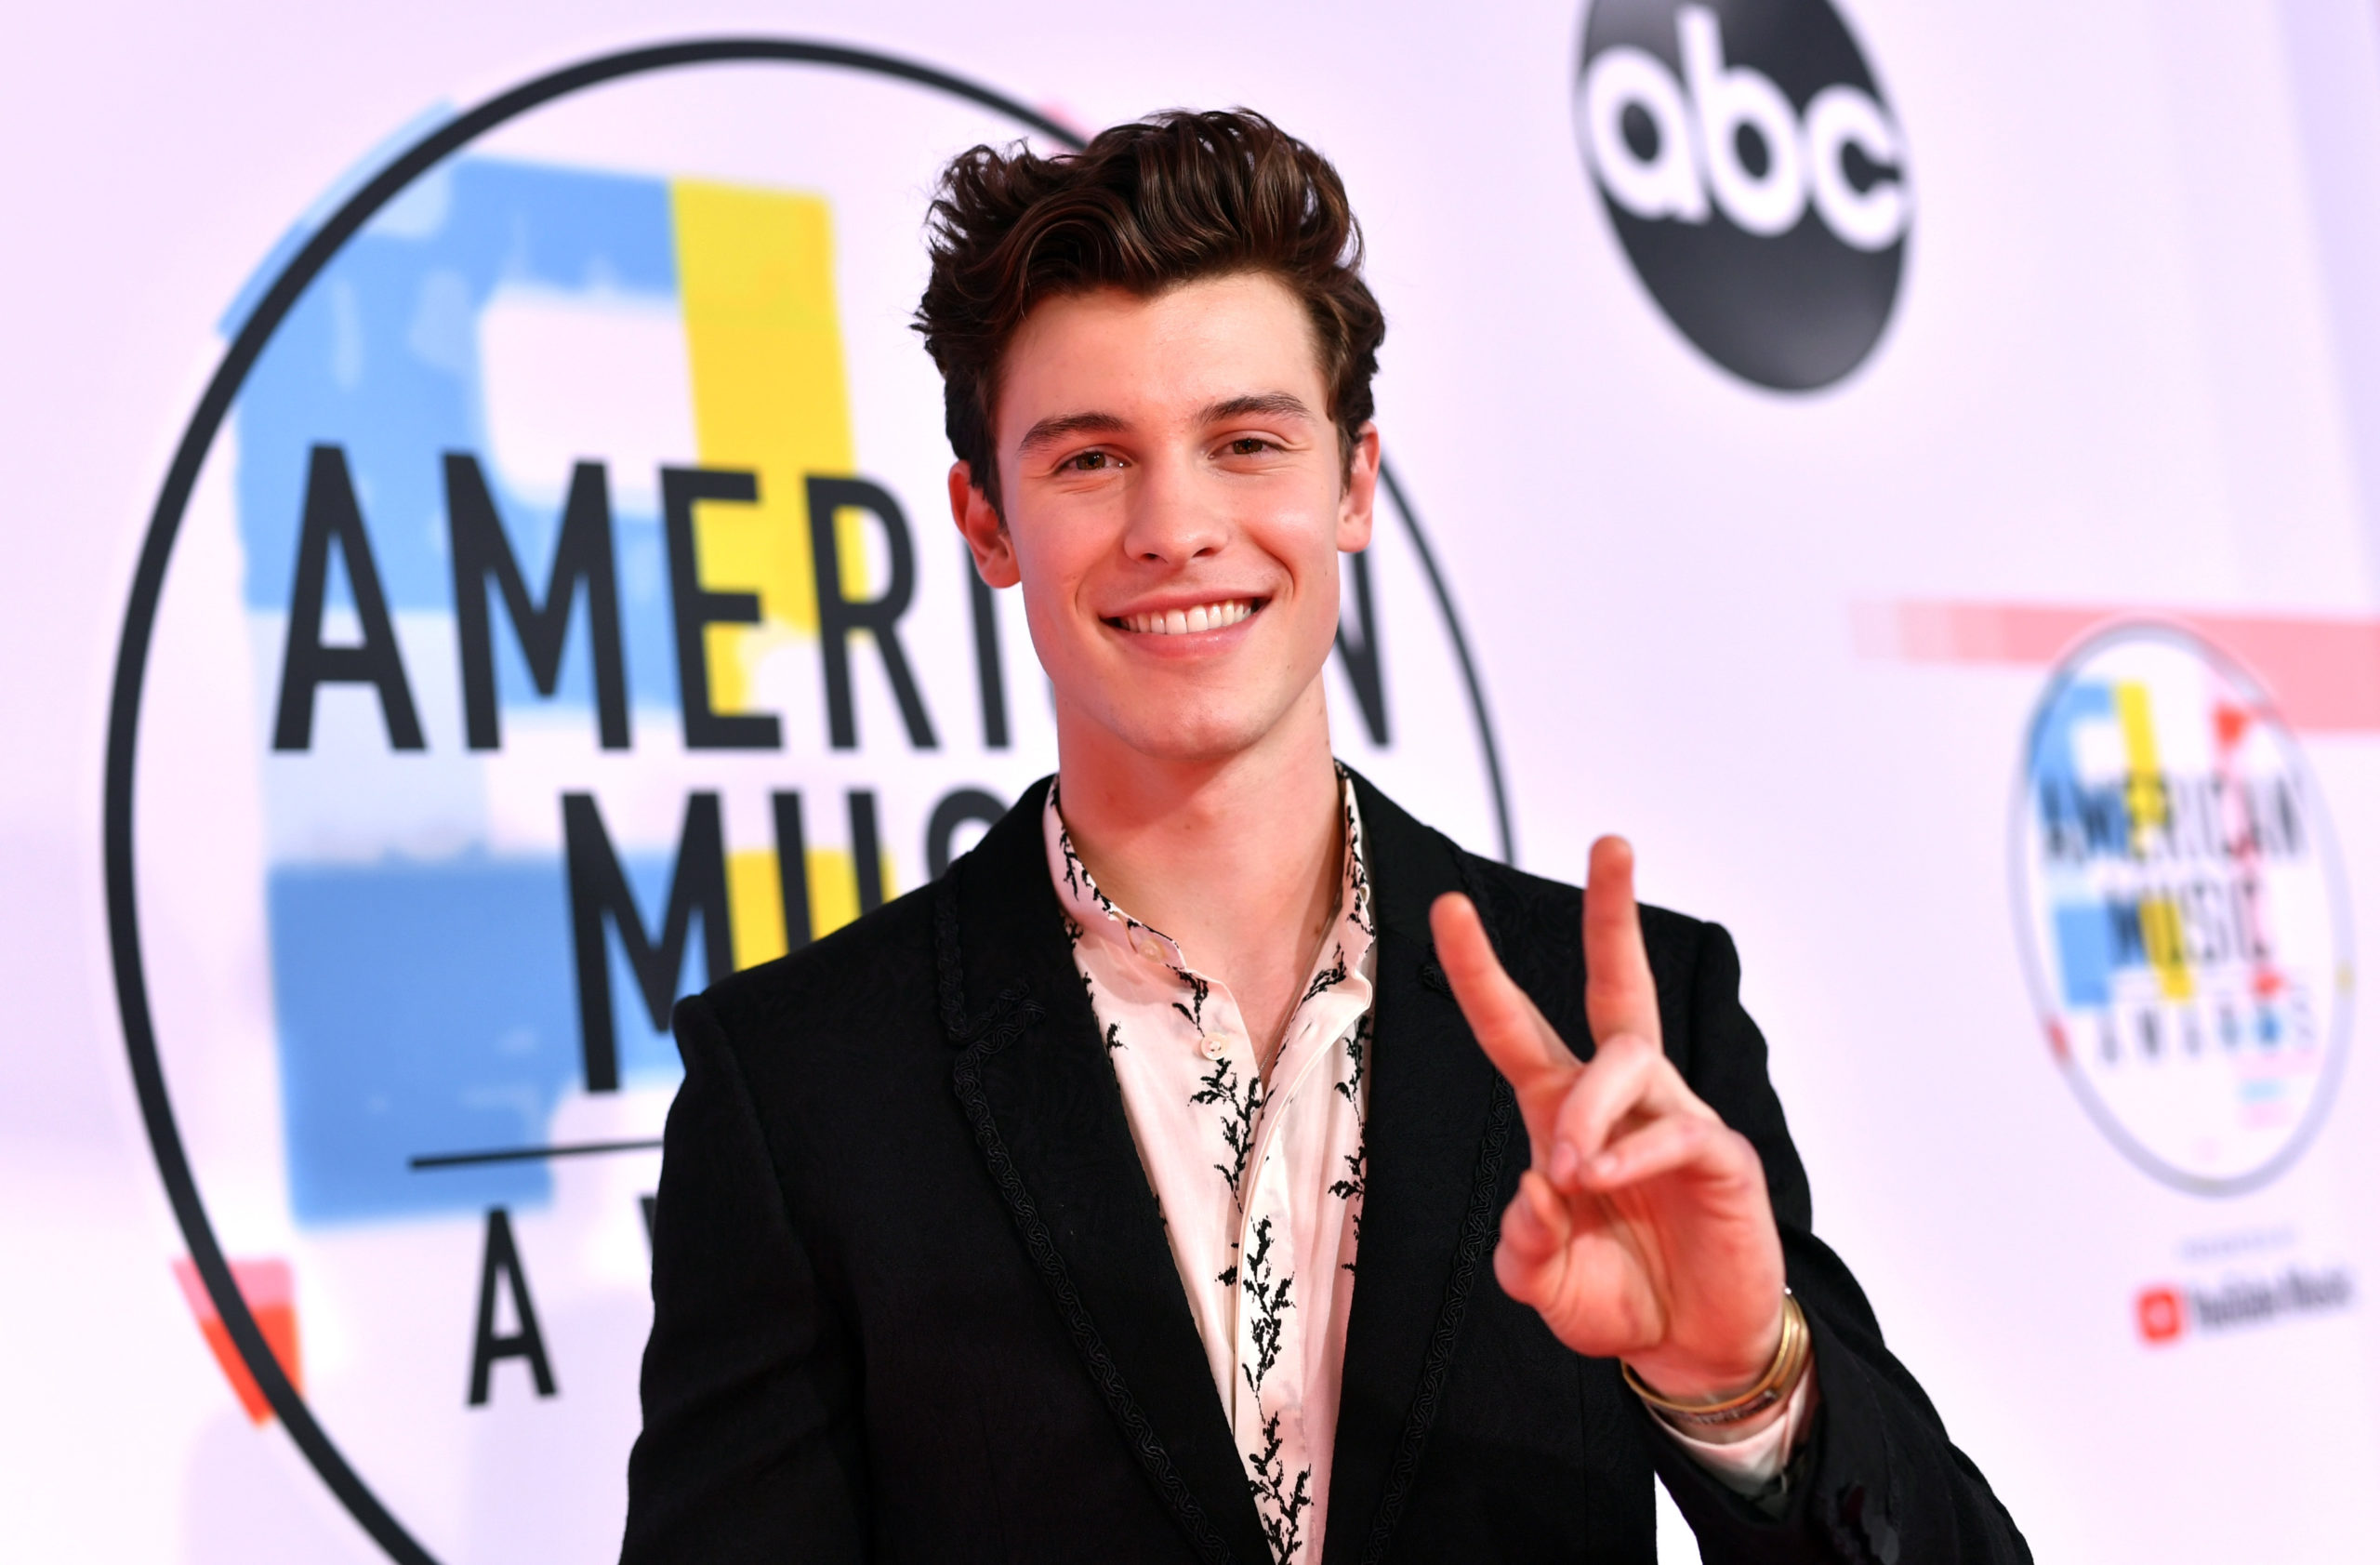 Shawn Mendes got 'upset' over fans' 'desperation' for him to come out as gay